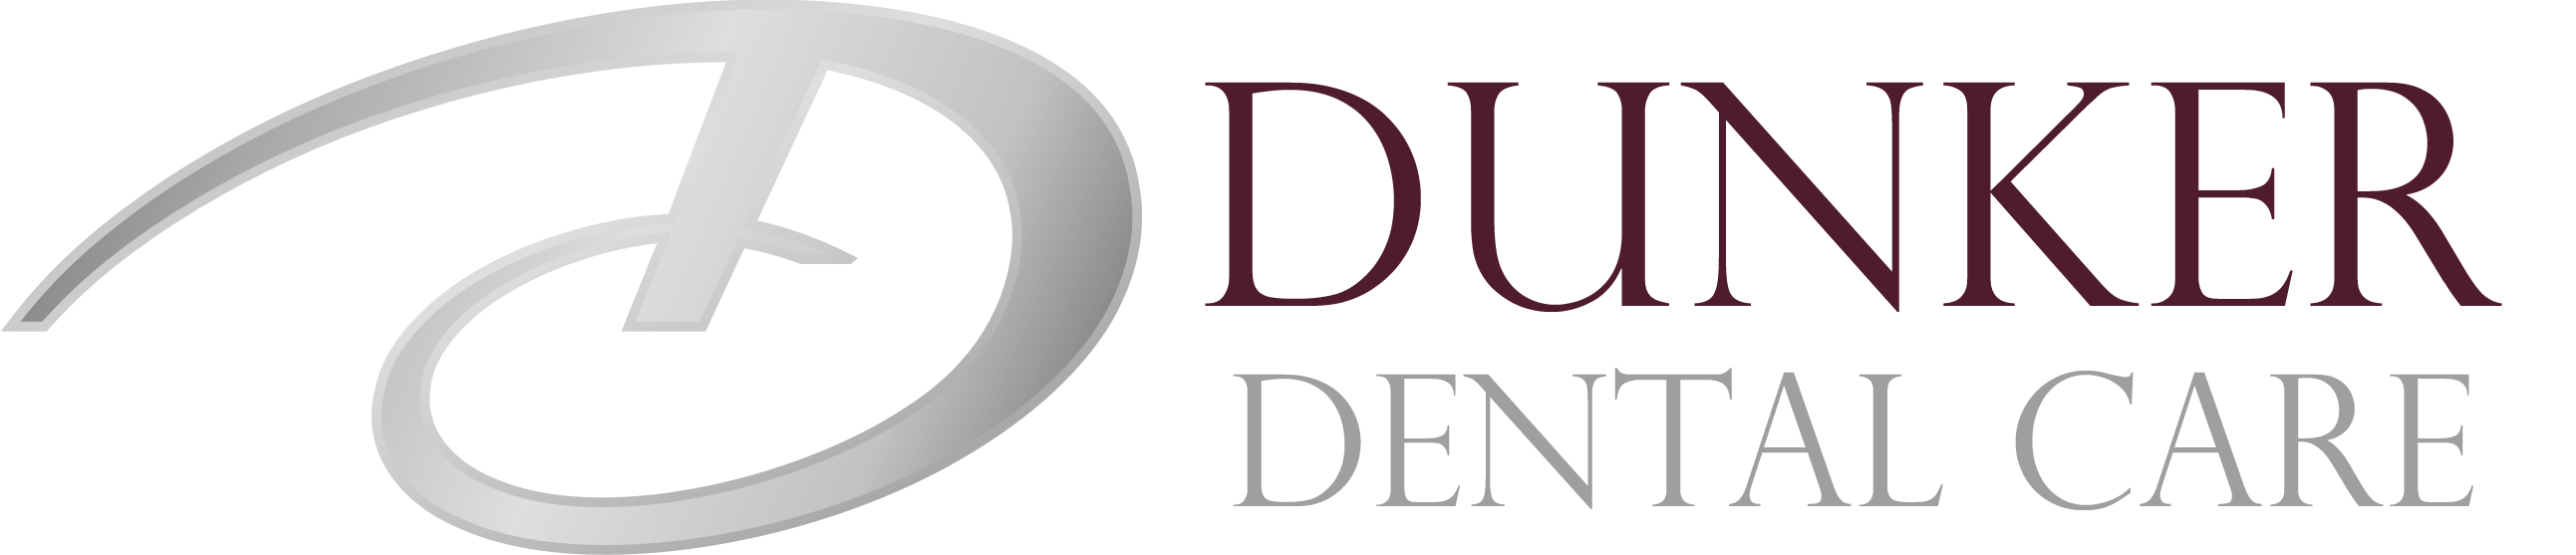 Abc Dental Care different uses for composite in dentistry